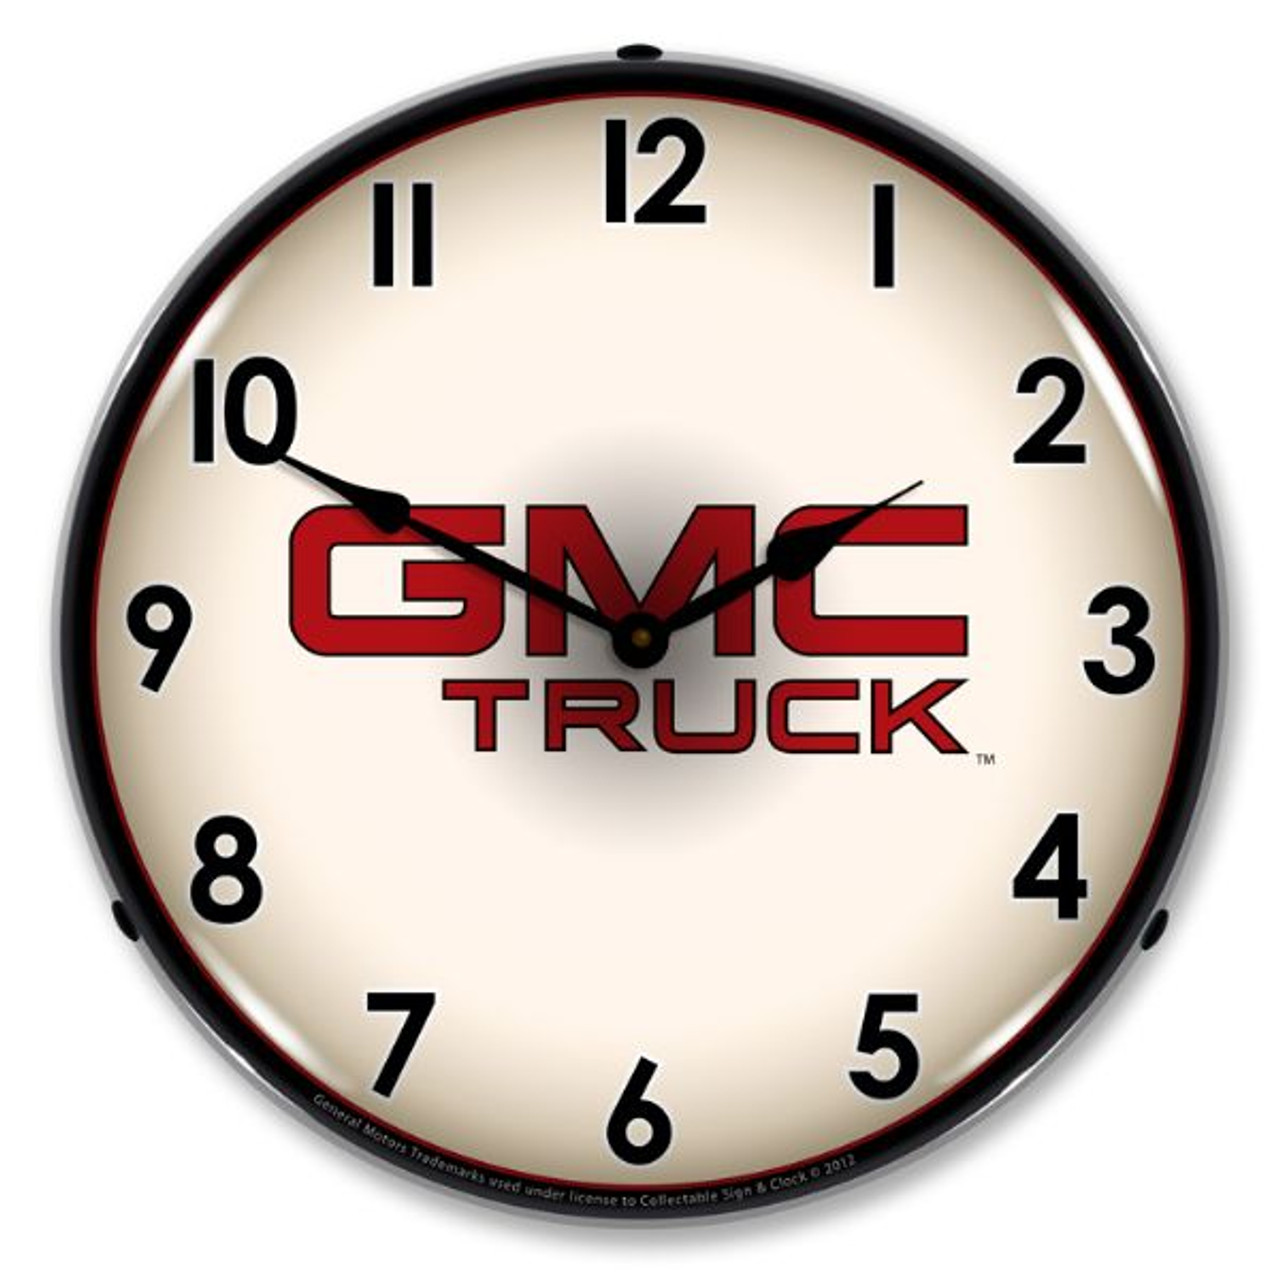 GMC Truck Lighted Wall Clock 14 x 14 Inches